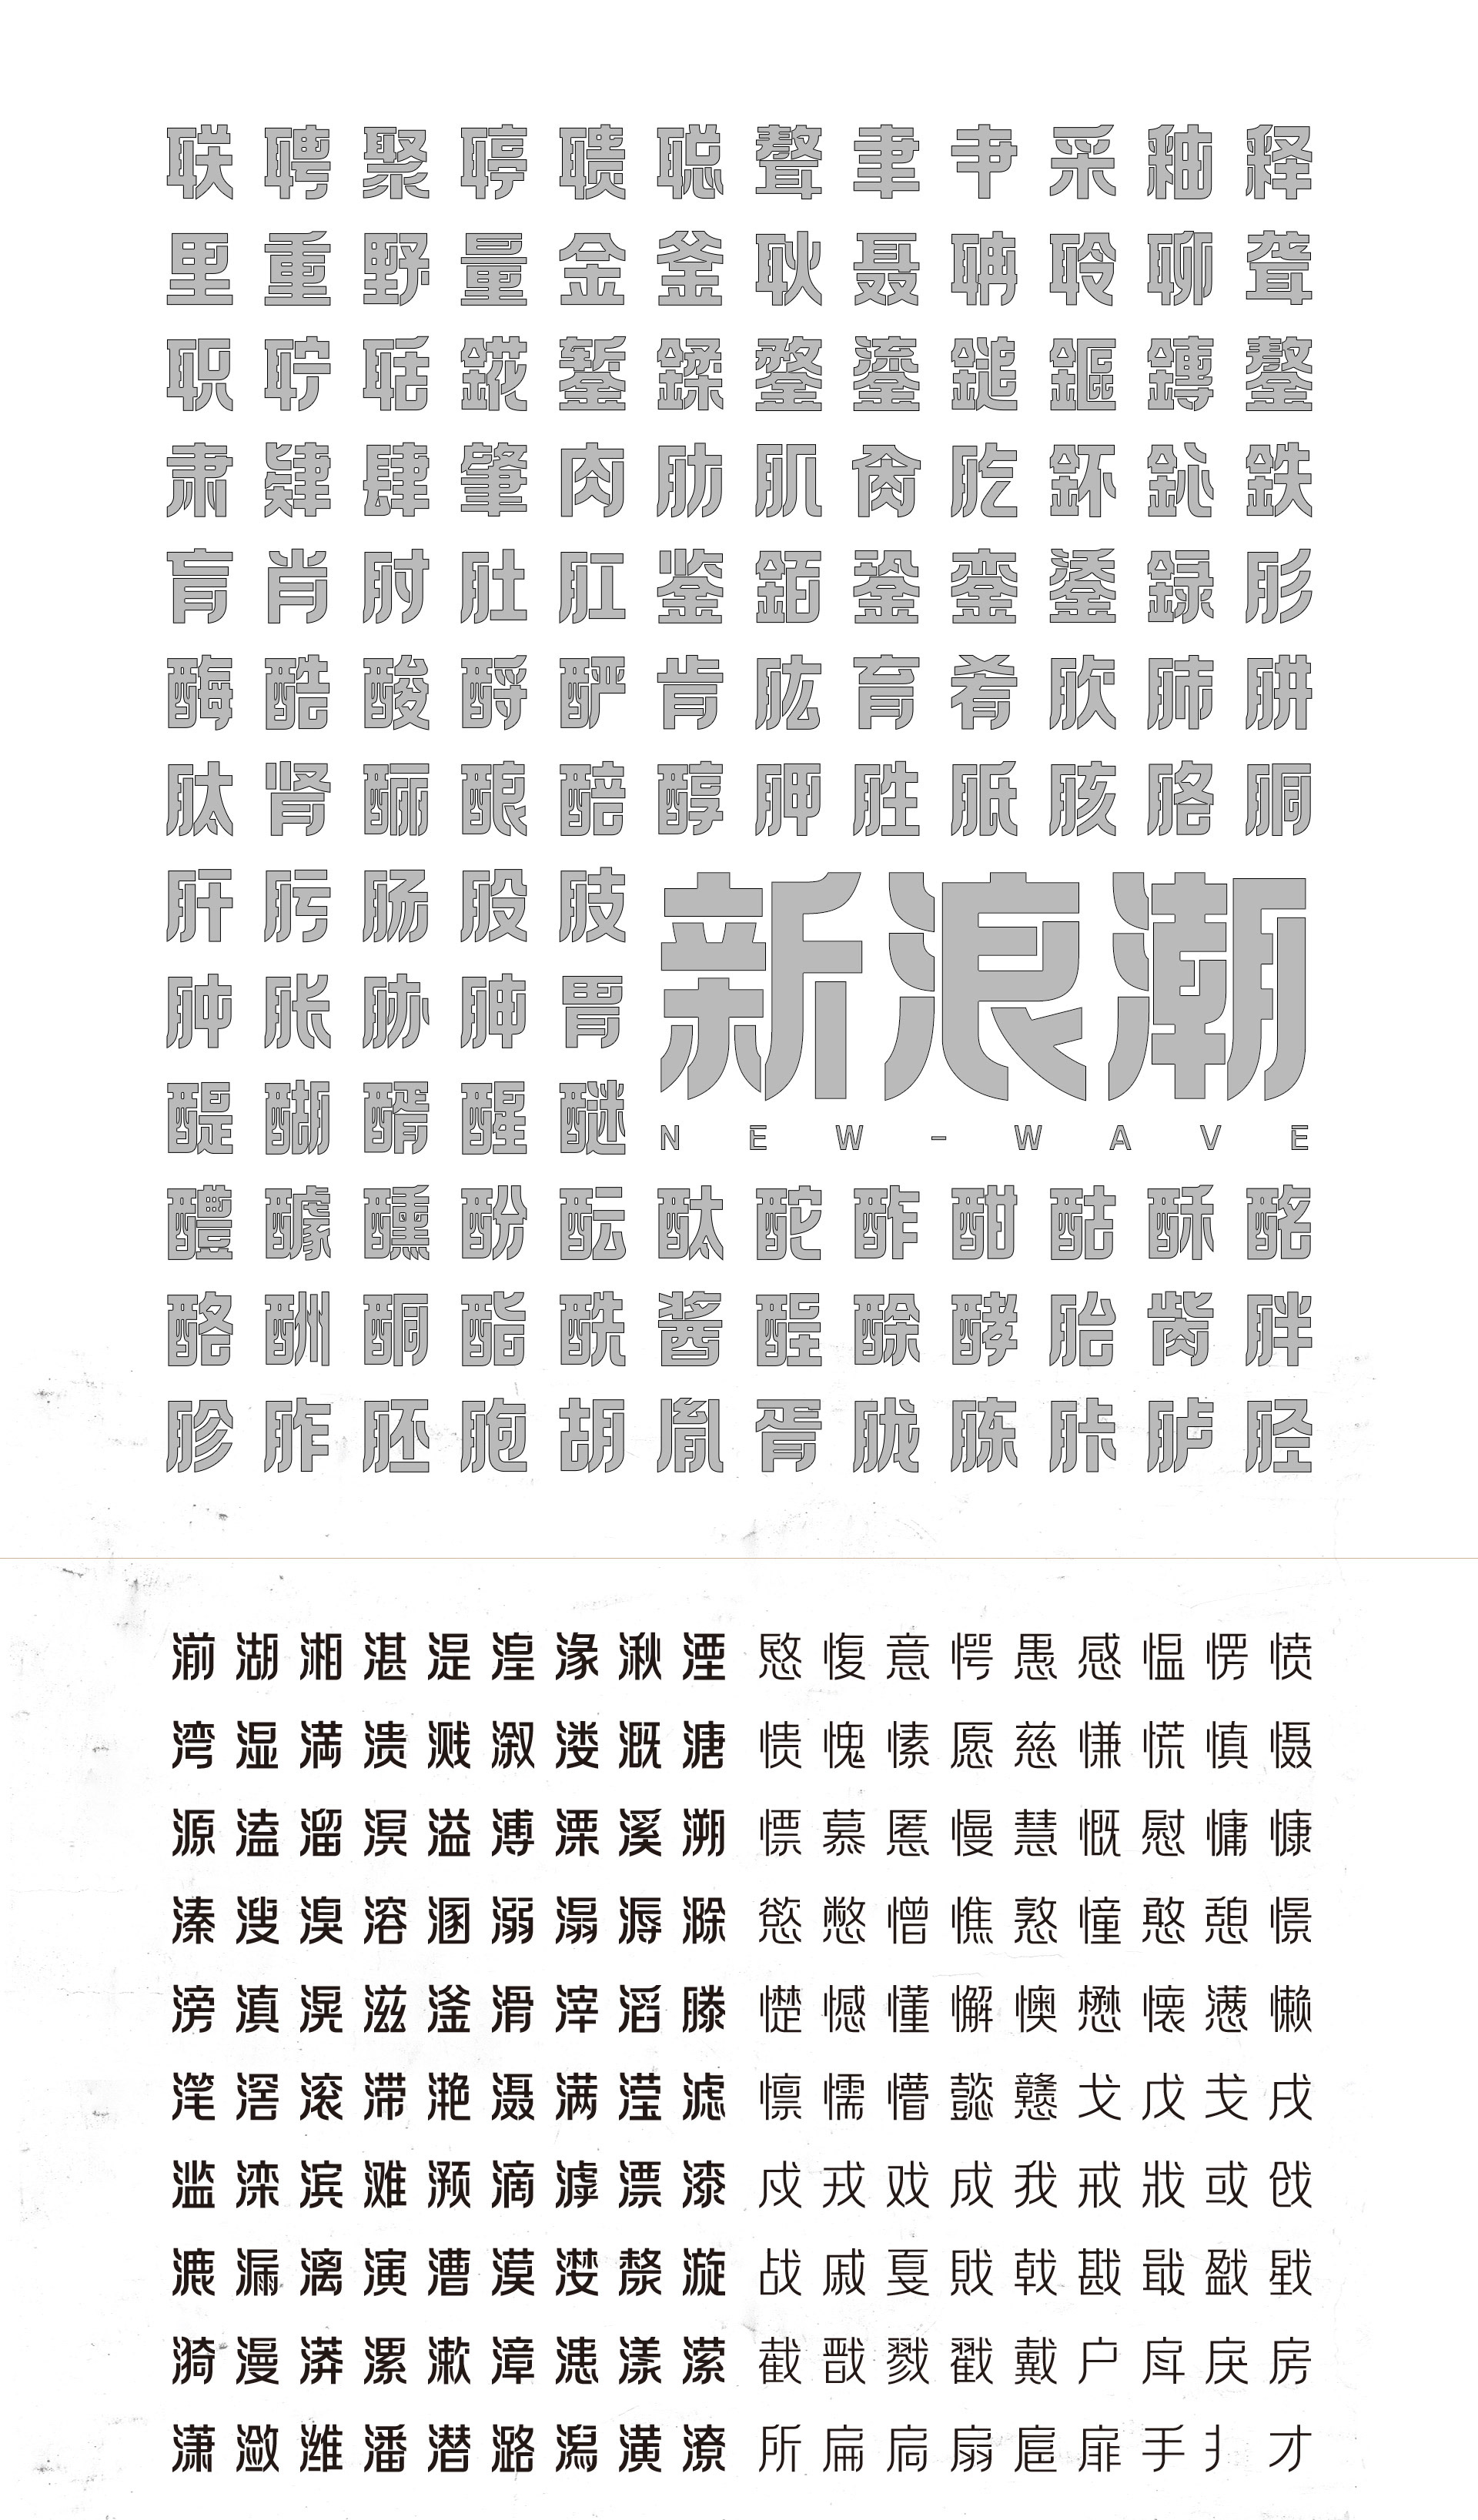 Founder Lago Headline Family Integrating the Characteristics of Republic of China Fine Arts Characters